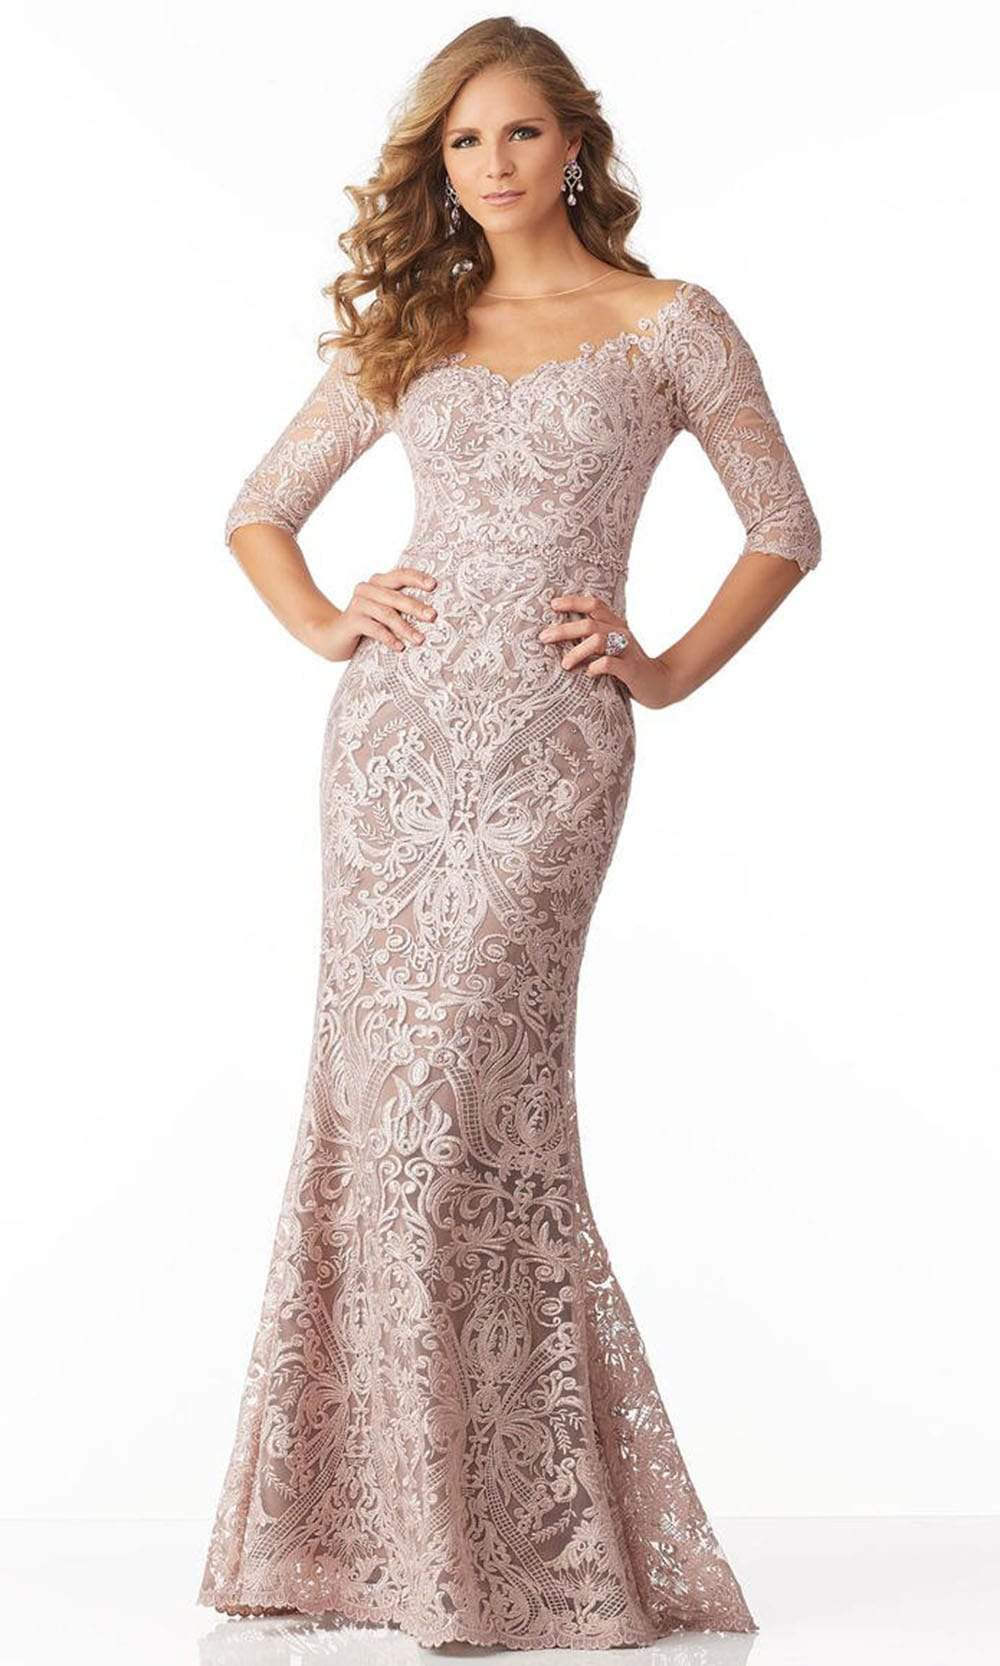 MGNY By Mori Lee - 71801 Elbow Sleeve Beaded Embroidery Evening Gown Mother of the Bride Dresses 00 / Blush